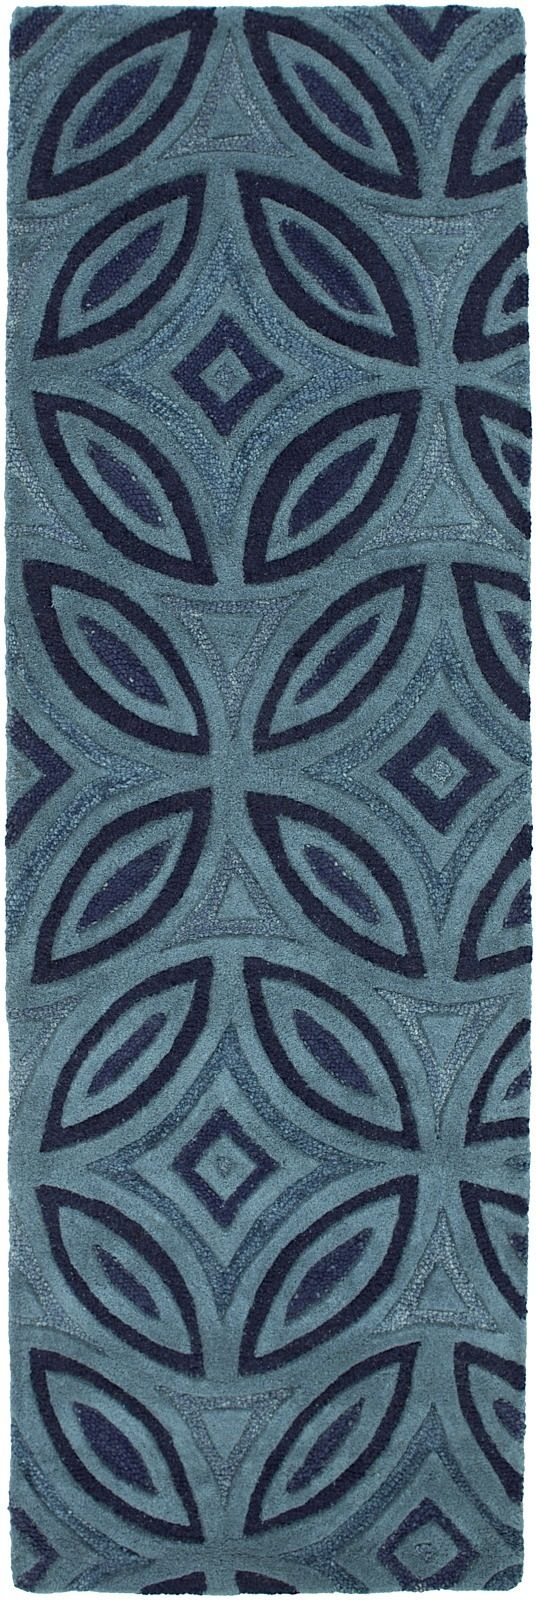 surya perspective contemporary area rug collection